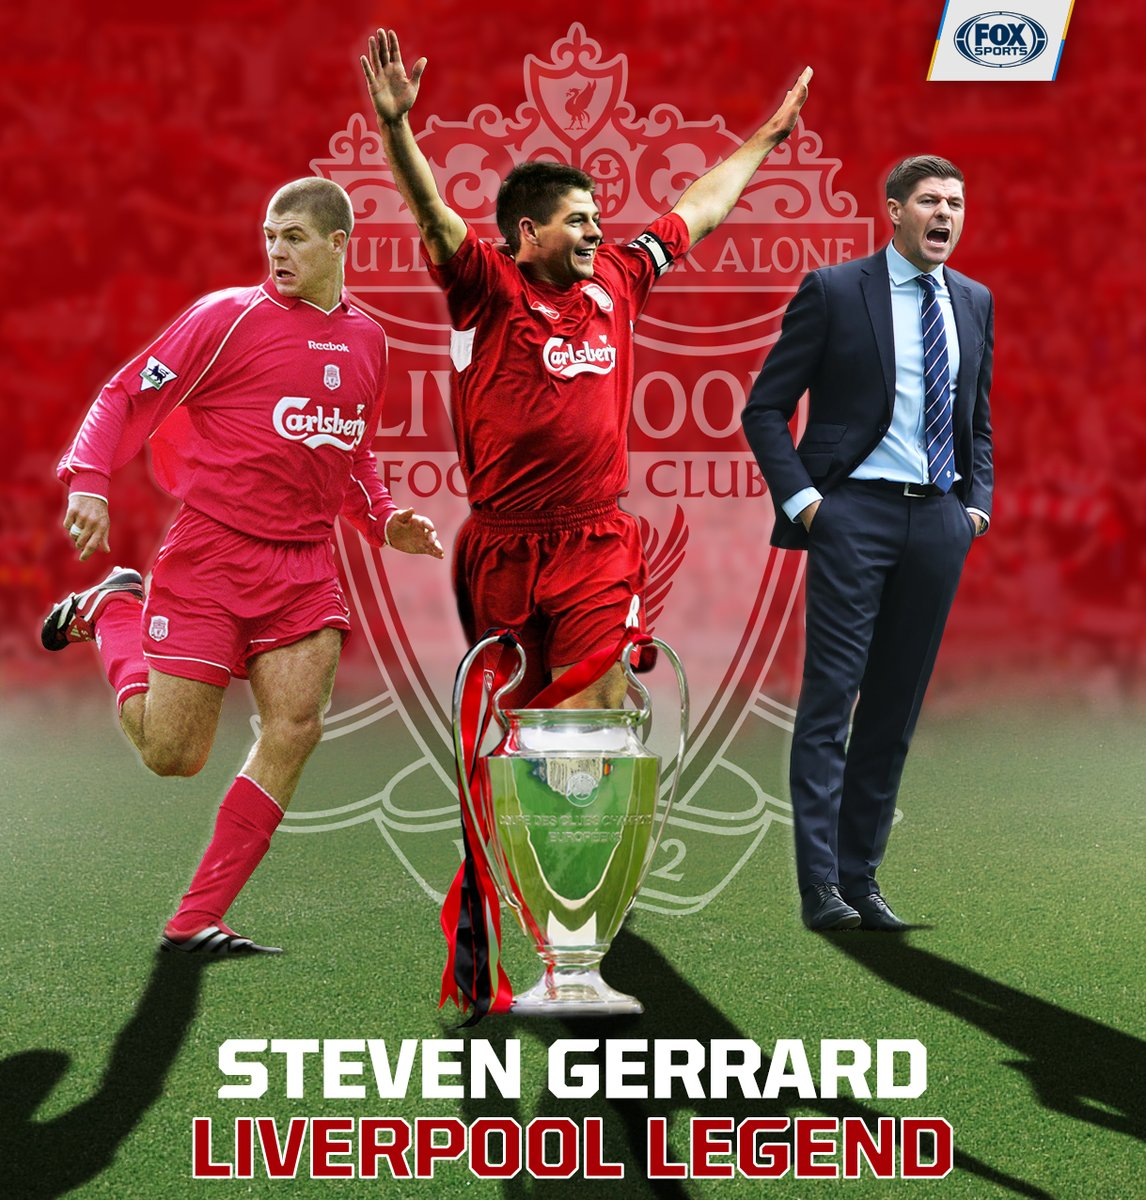 🎉 Happy birthday to the legend himself, Steven Gerrard! 🎉  From an academy player to winning the Champions League in Istanbul with @LFC, to currently managing @RangersFC, we've seen it all 🤩  What was your most favourite moment of Stevie G? Let us know below! 👀👇🏼 https://t.co/6EGK4oJ5Sd